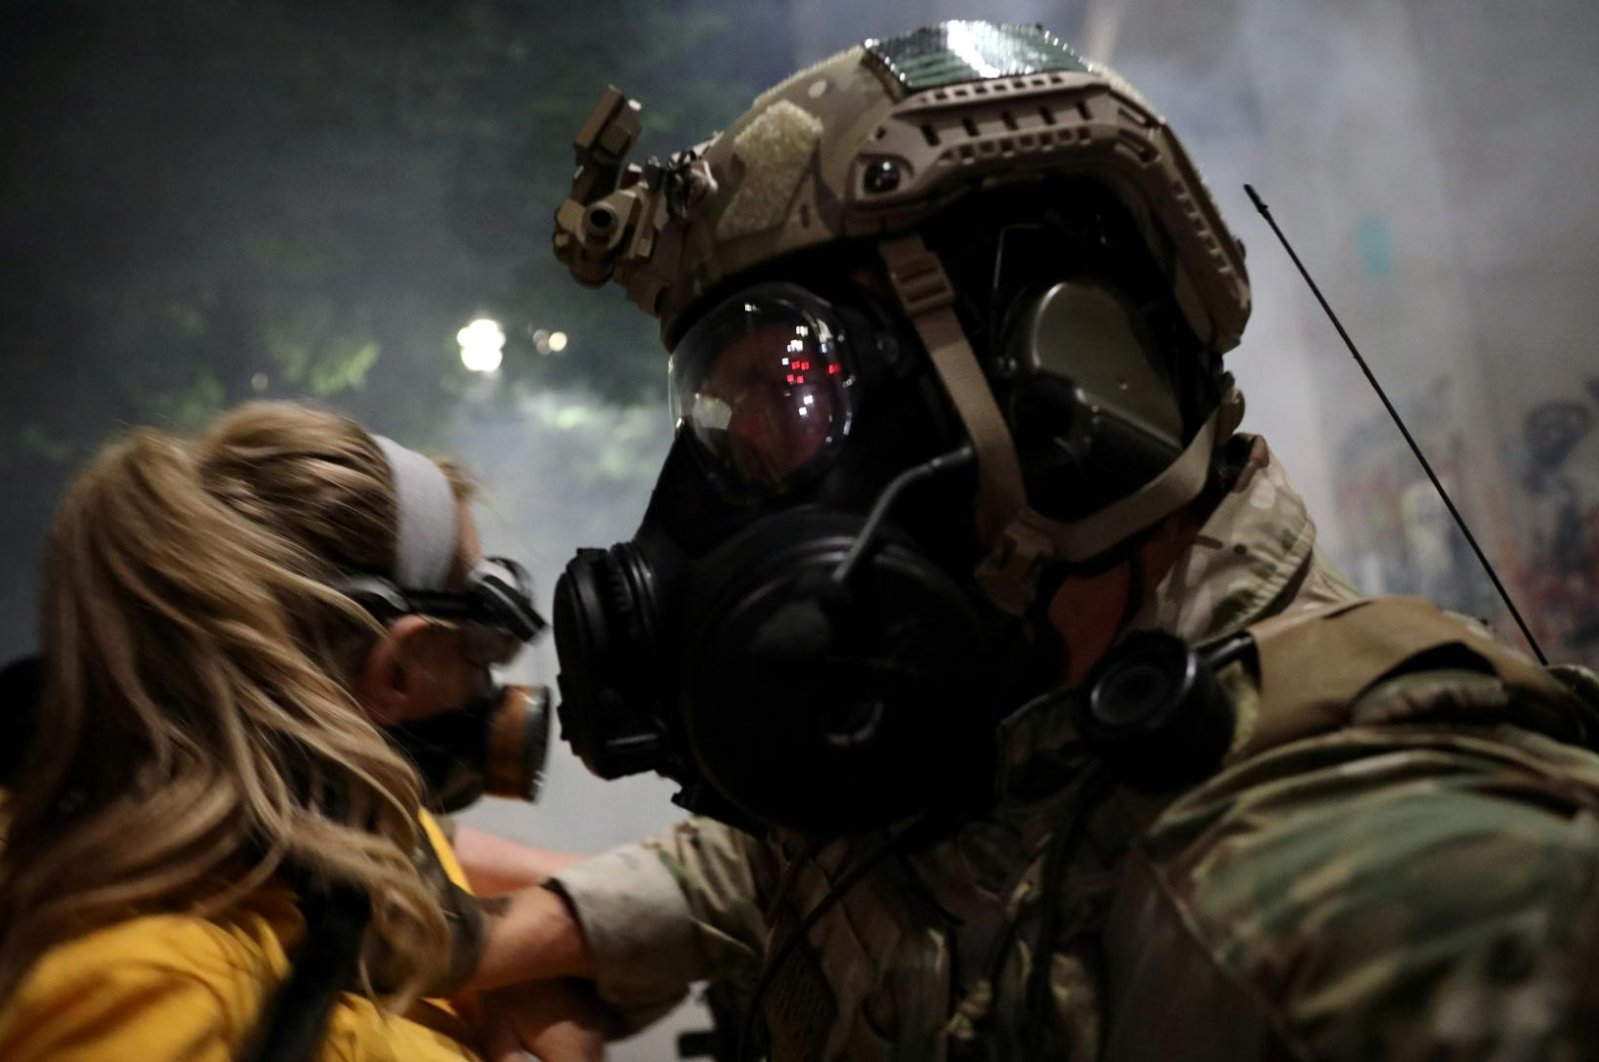 A federal law enforcement officer pushes a mother back during a demonstration against the presence of federal law enforcement officers and racial inequality in Portland, Oregon, U.S., July 21, 2020. (Reuters Photo)